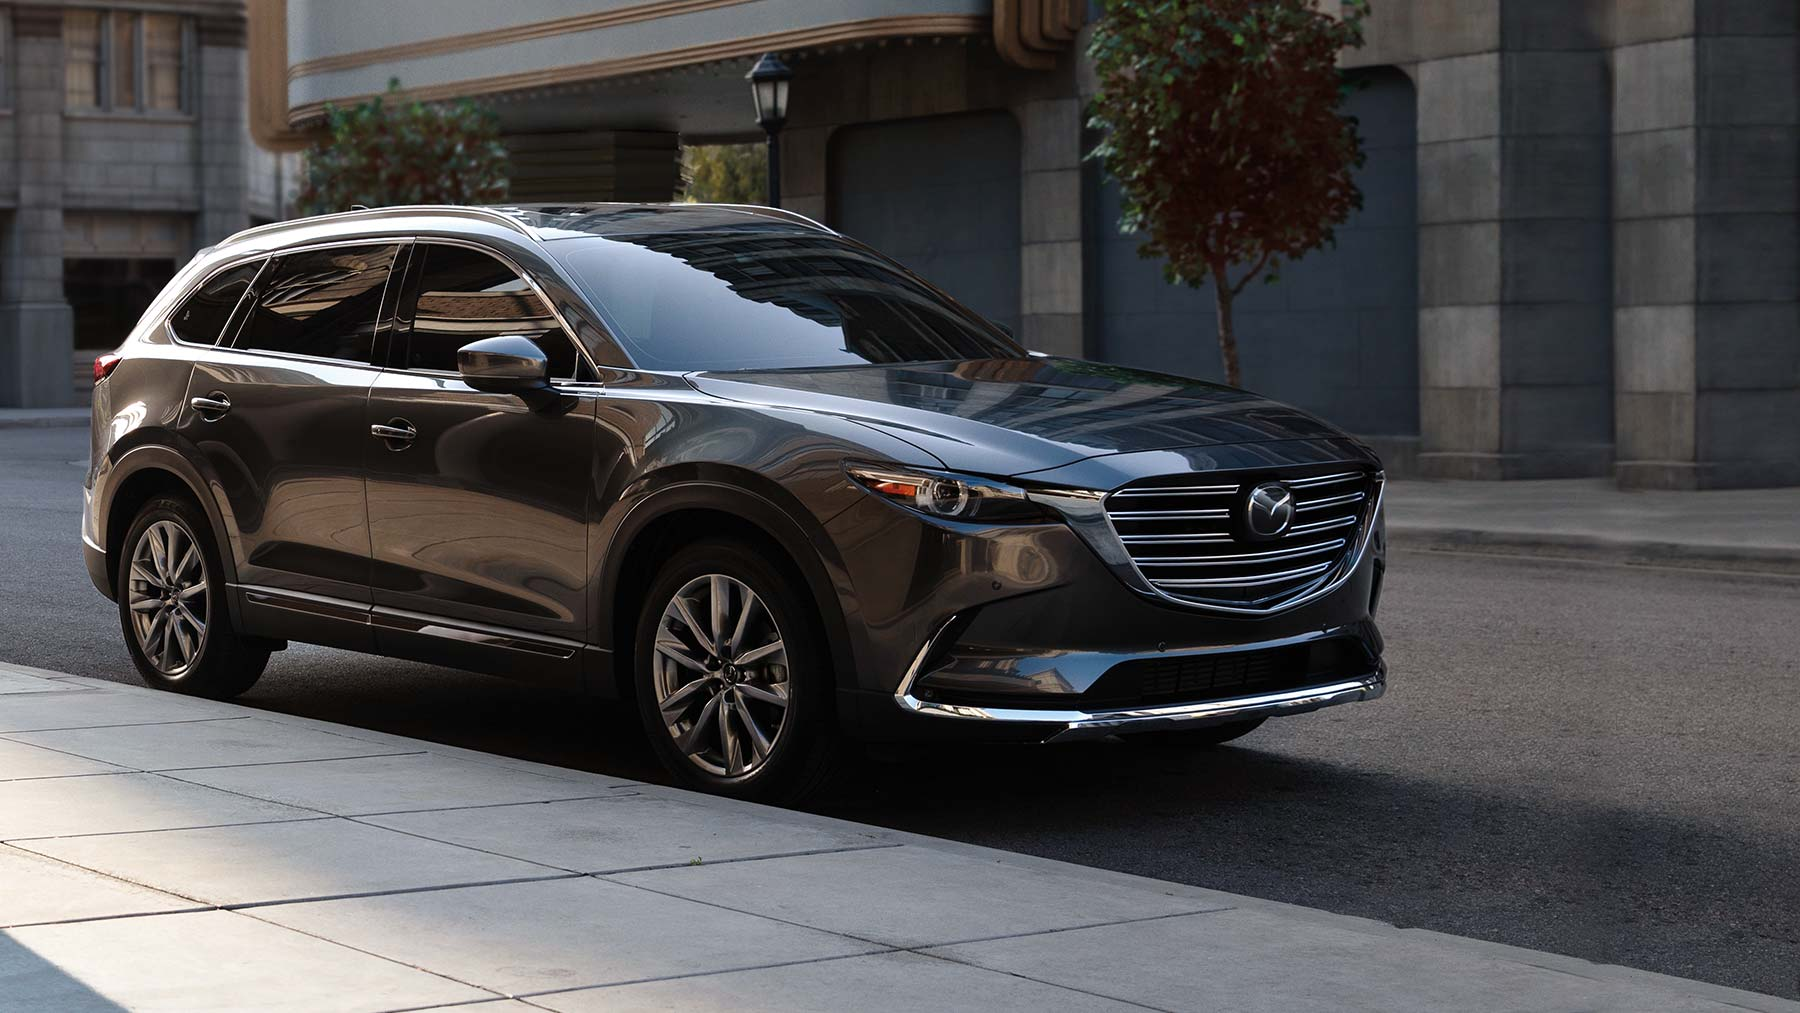 2019 Mazda CX-9 For Sale In Los Angeles, CA